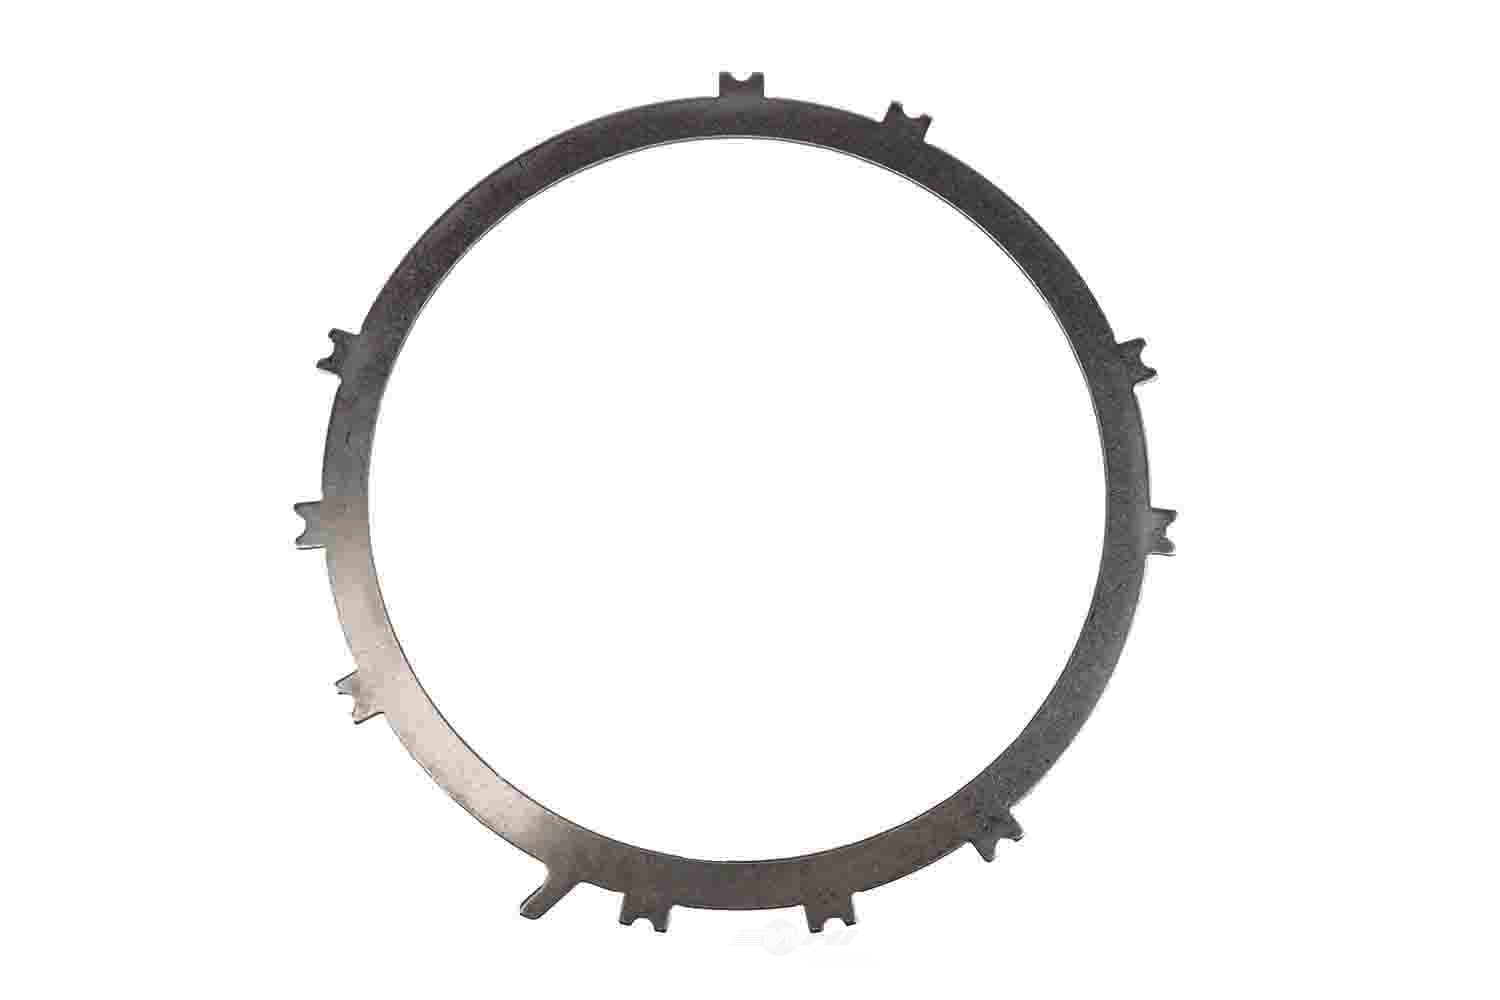 ACDELCO GM ORIGINAL EQUIPMENT - Transmission Clutch Friction Plate - DCB 24258076